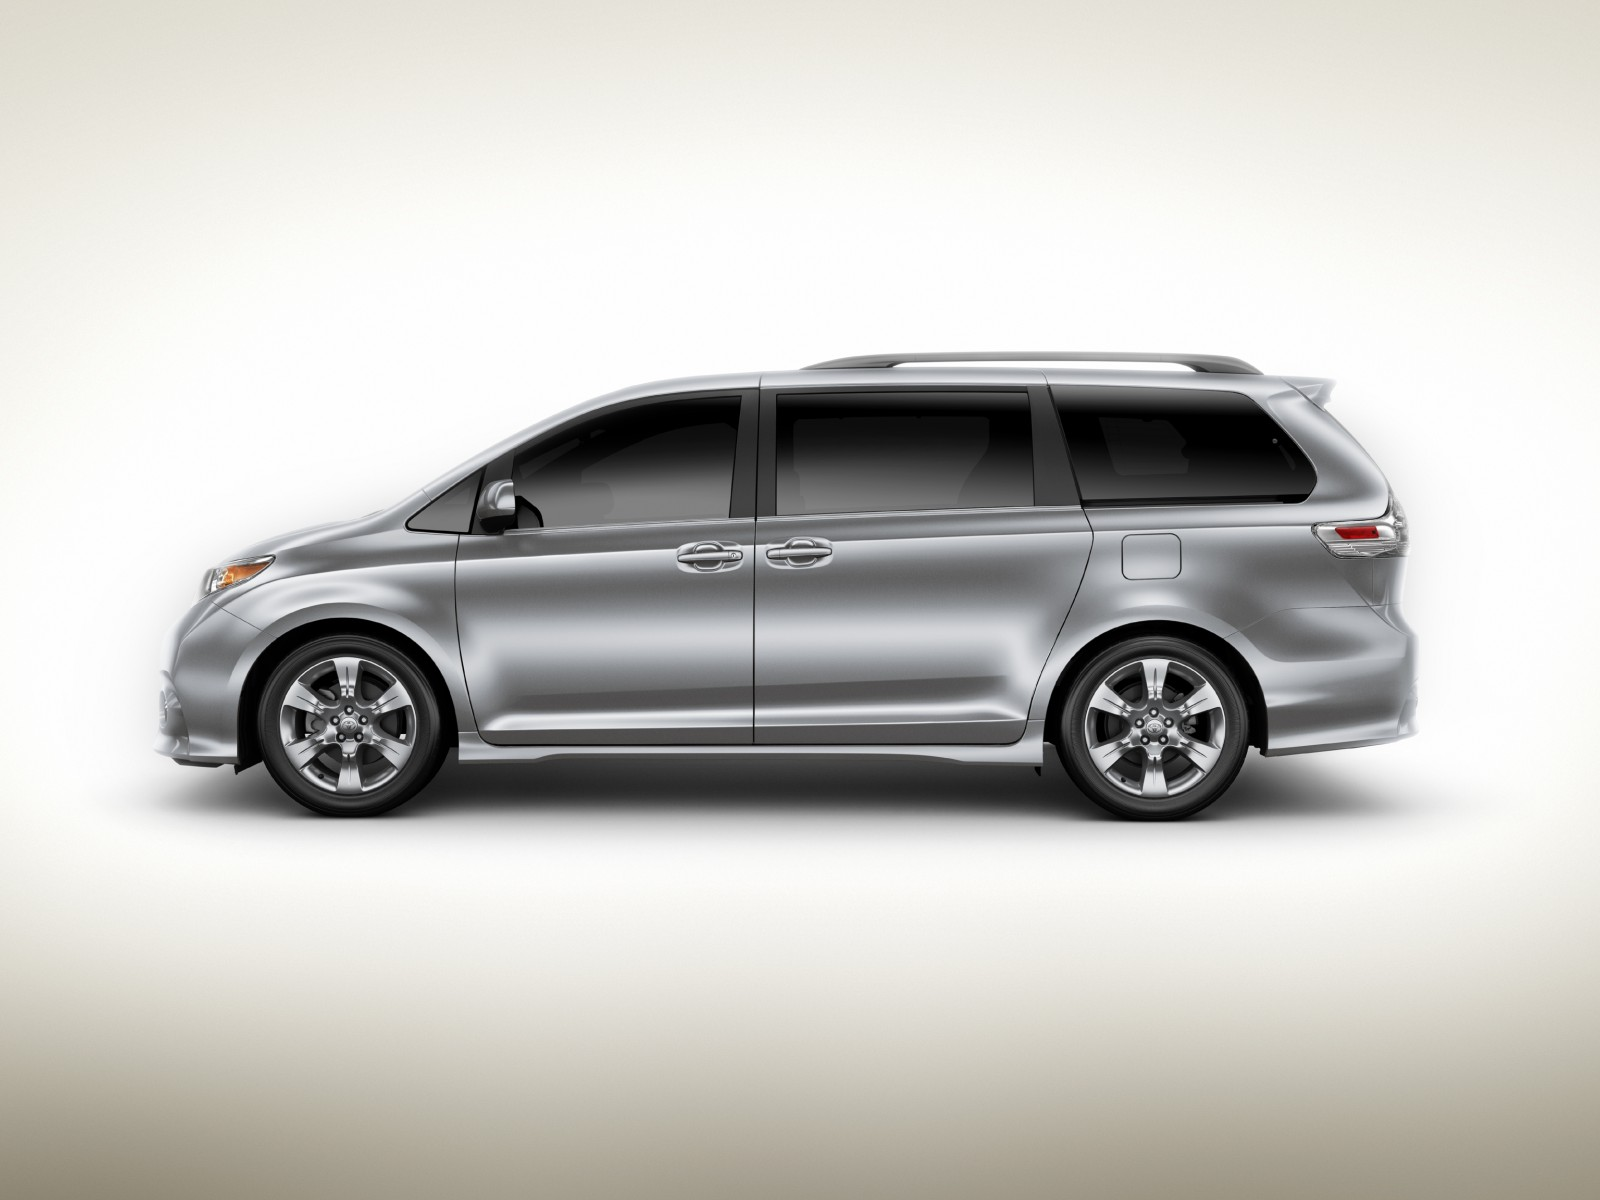 2011 toyota sienna se motor desktop. Black Bedroom Furniture Sets. Home Design Ideas